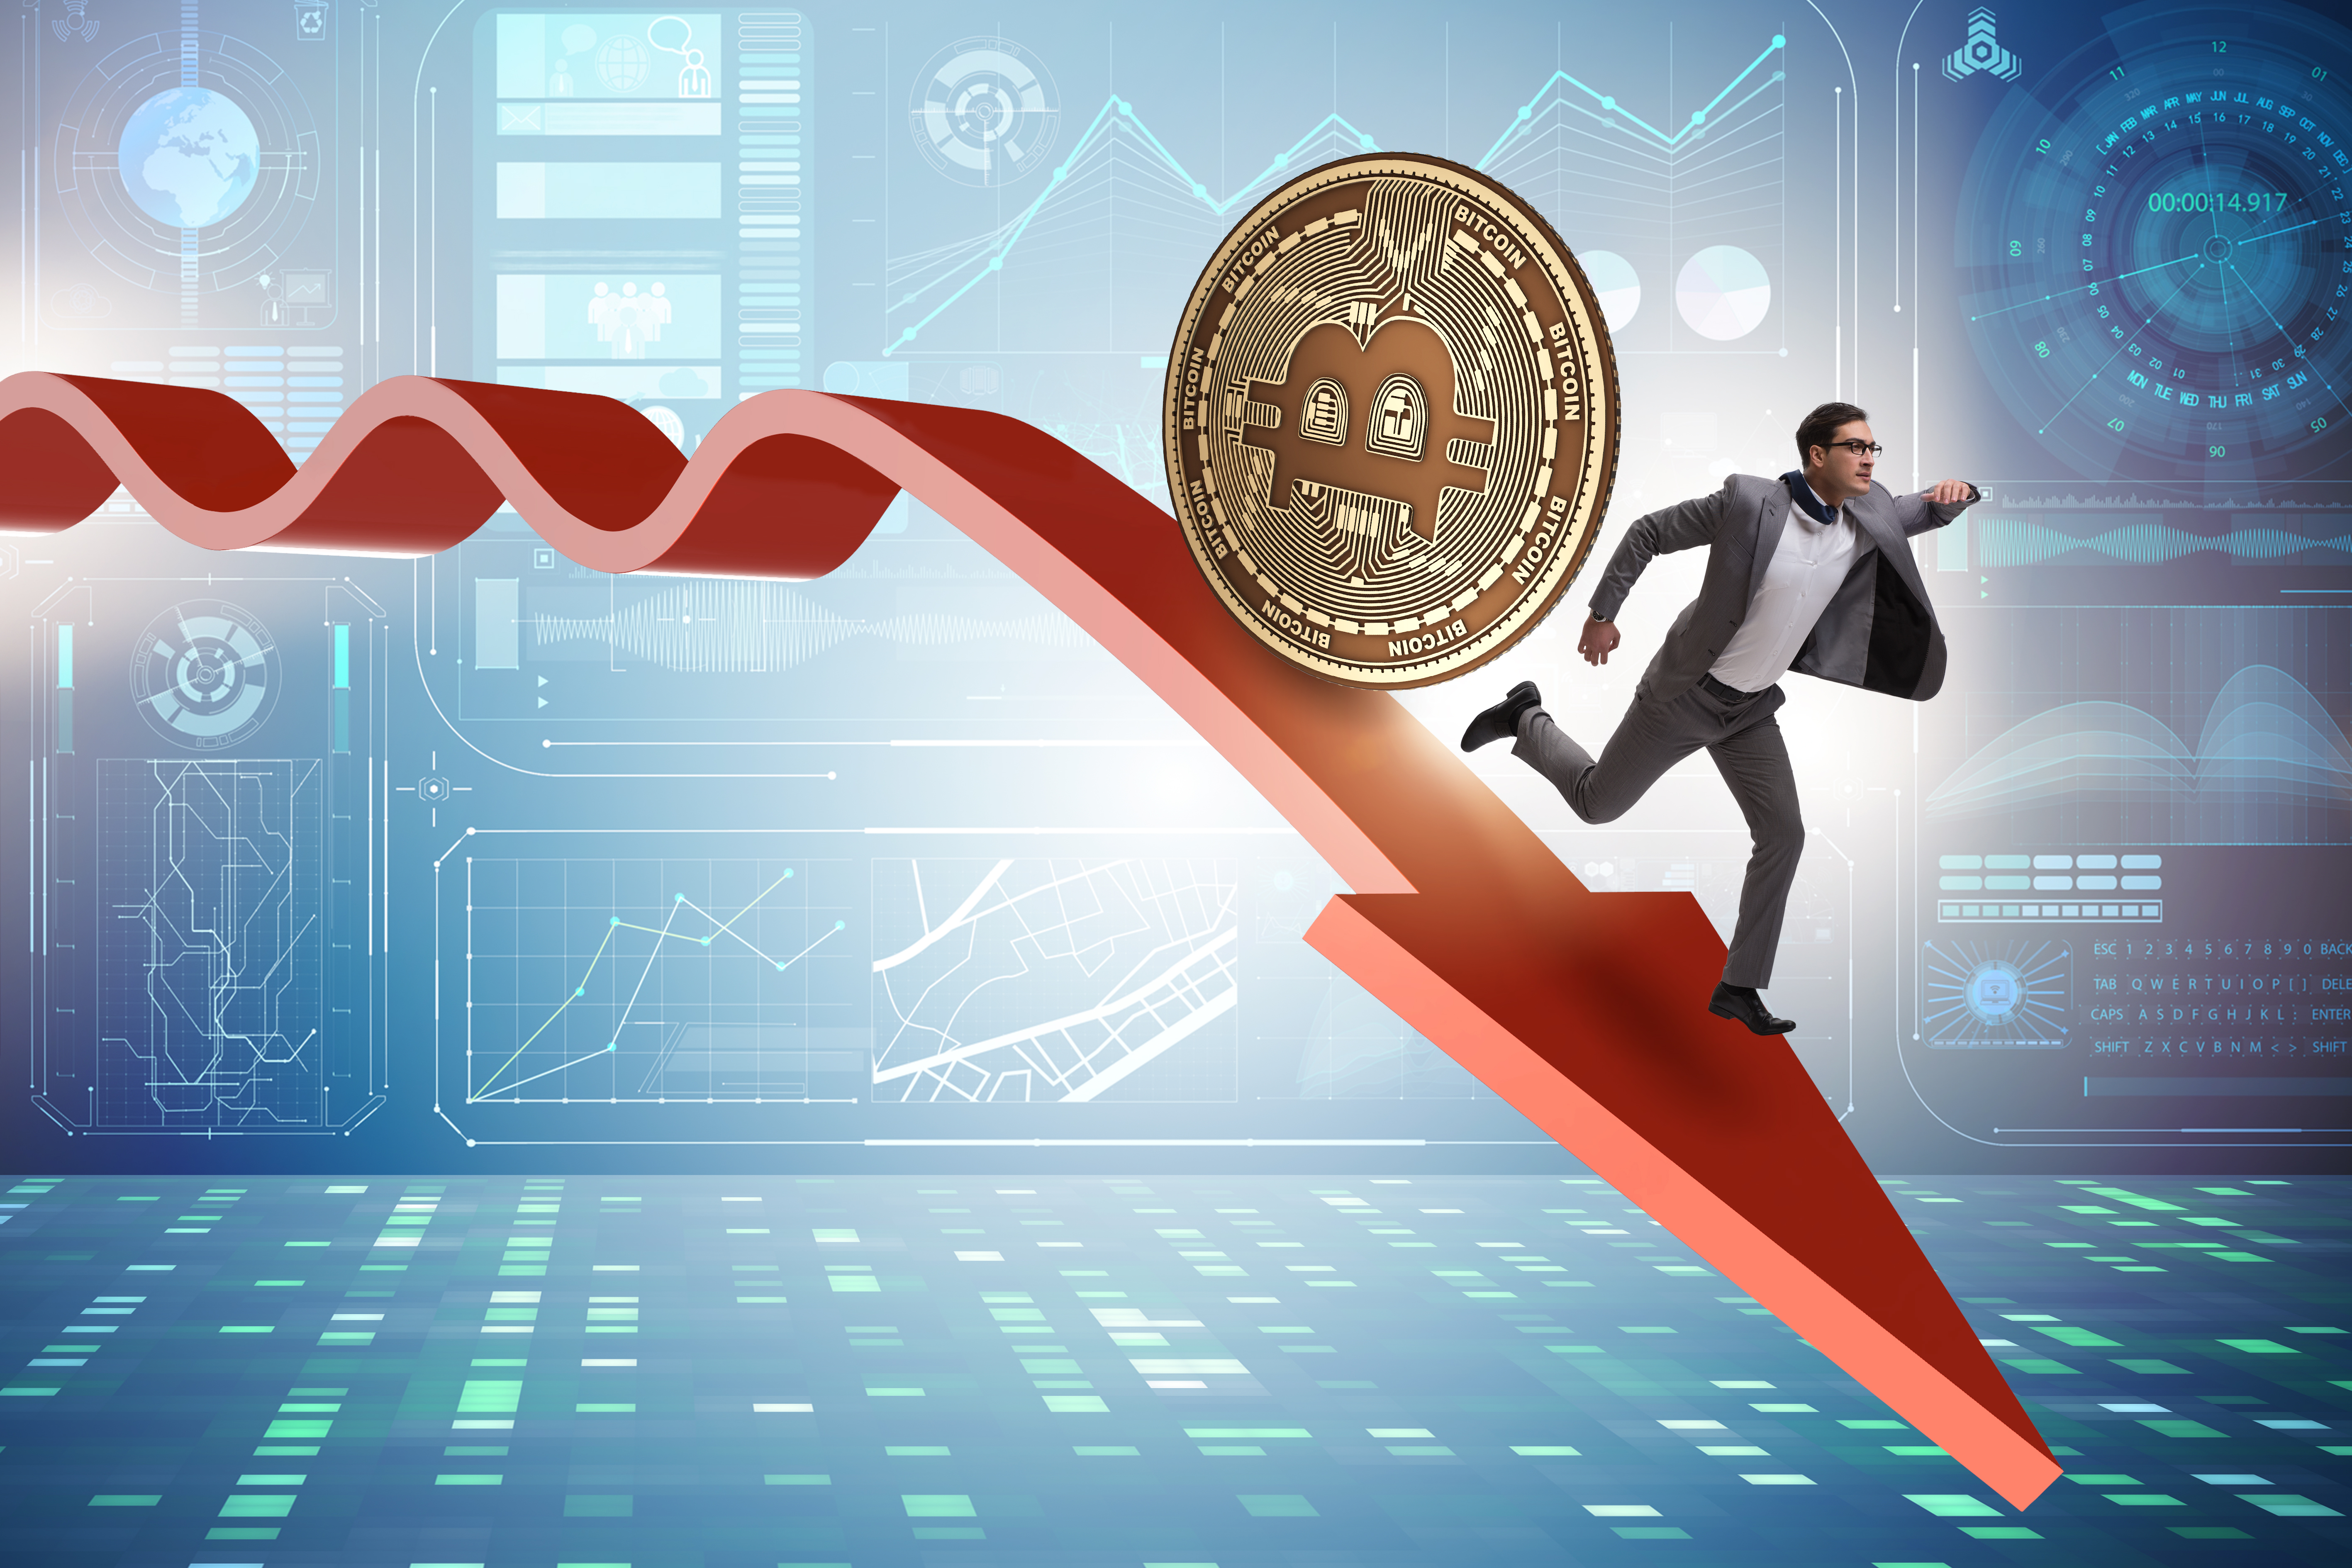 Bitcoin price analysis – executive running on a downward-pointing arrow behind a rolling bitcoin token